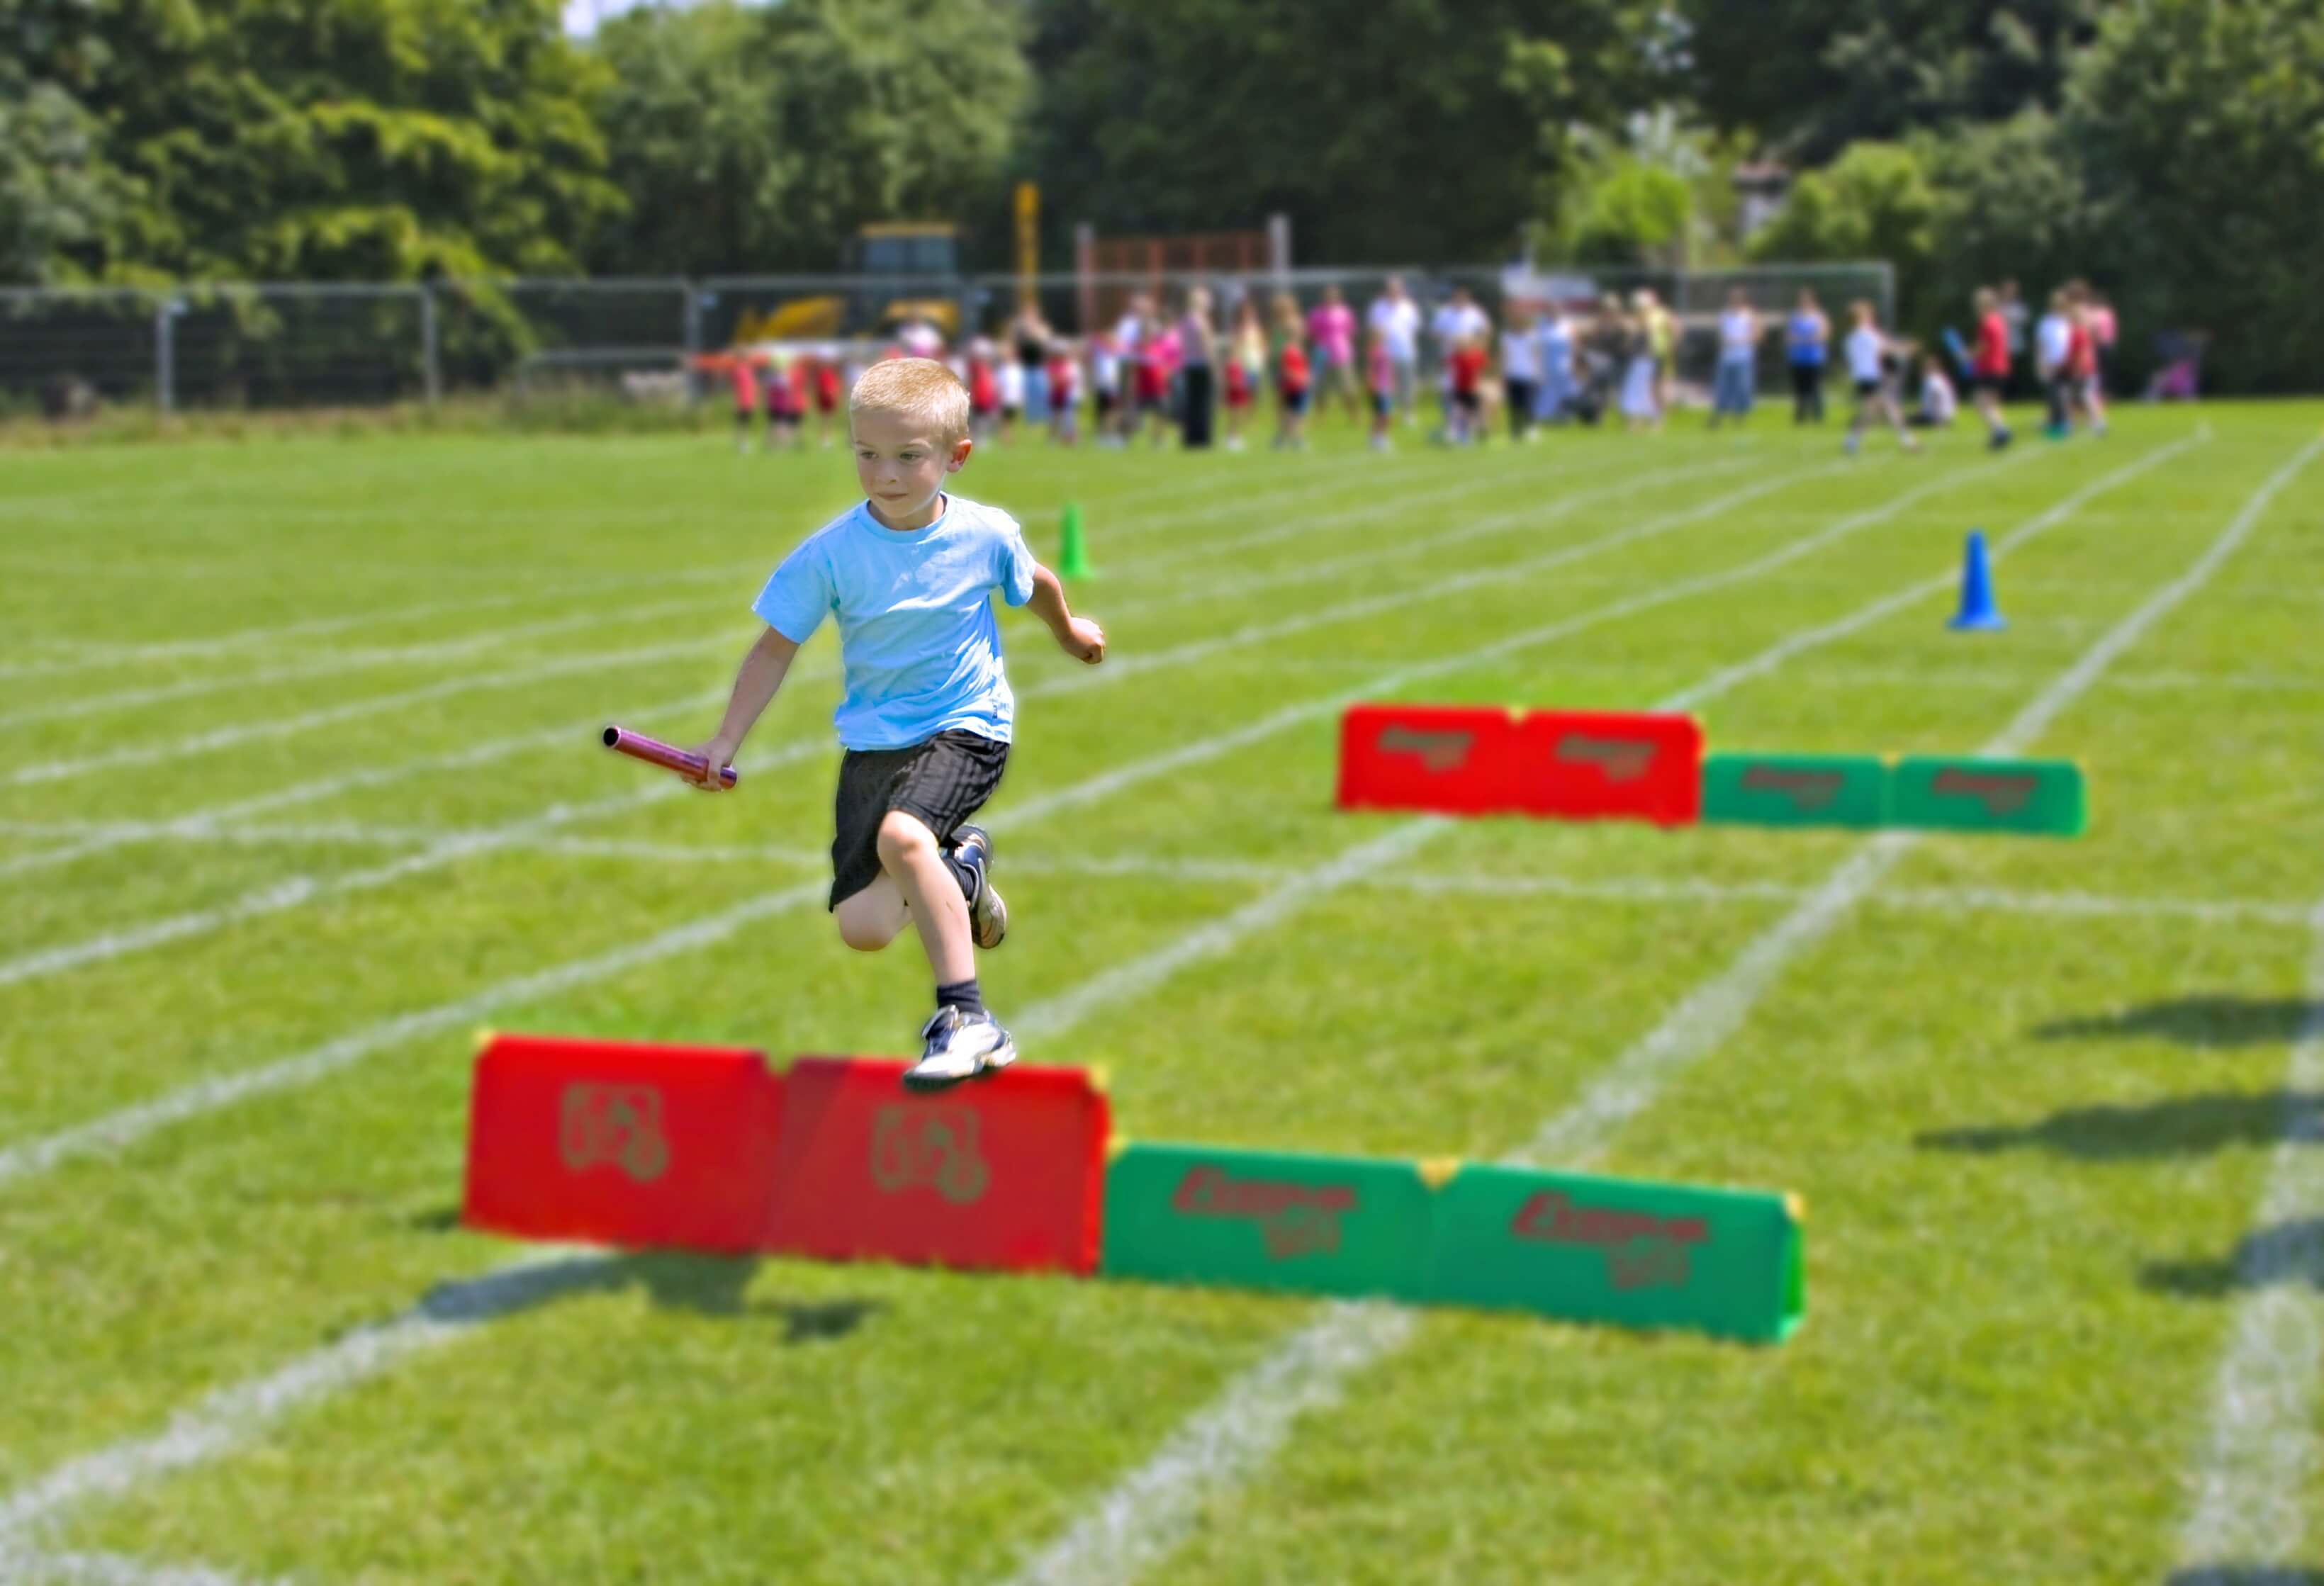 school sports day - boy running the relay race